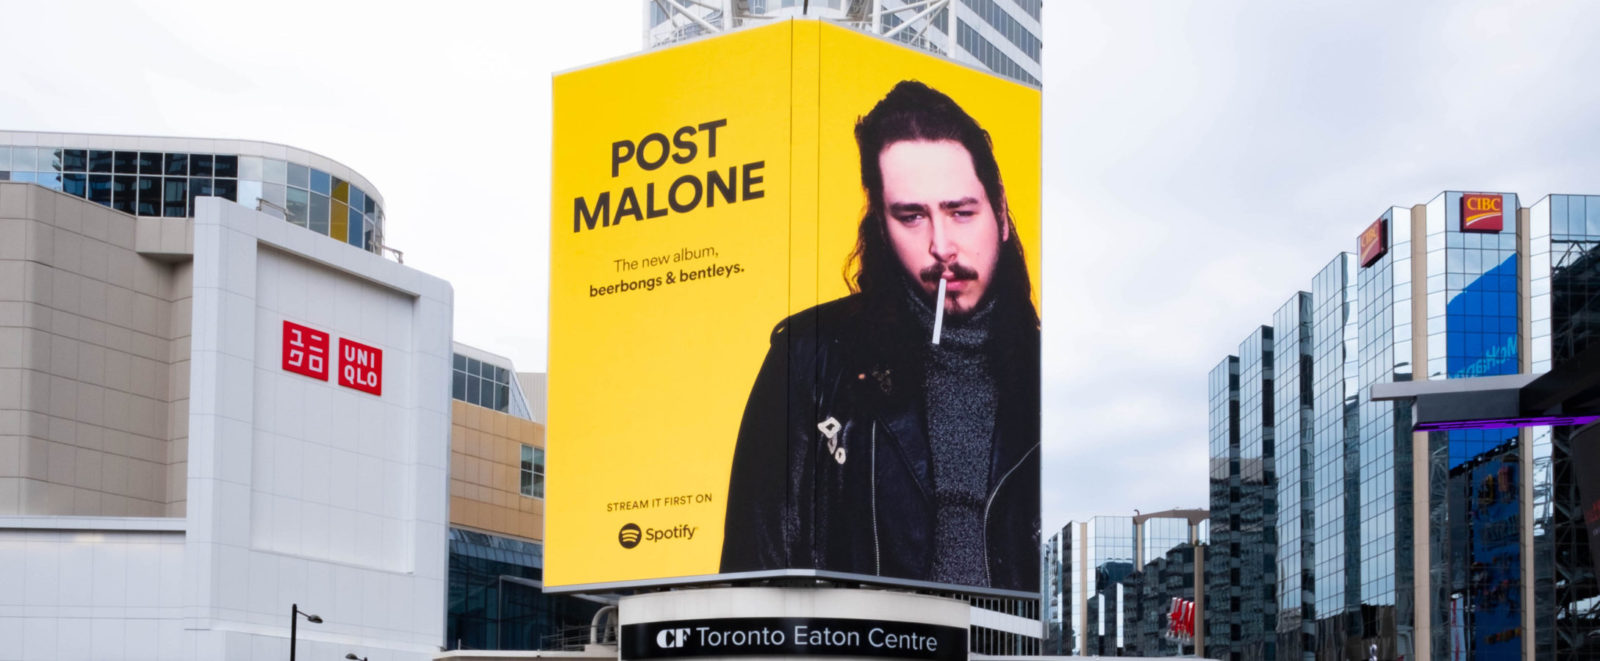 Spotify Post Malone - Yonge-Dundas Square - CF TEC Tower + AOB Media Tower (Toronto, Ontario)